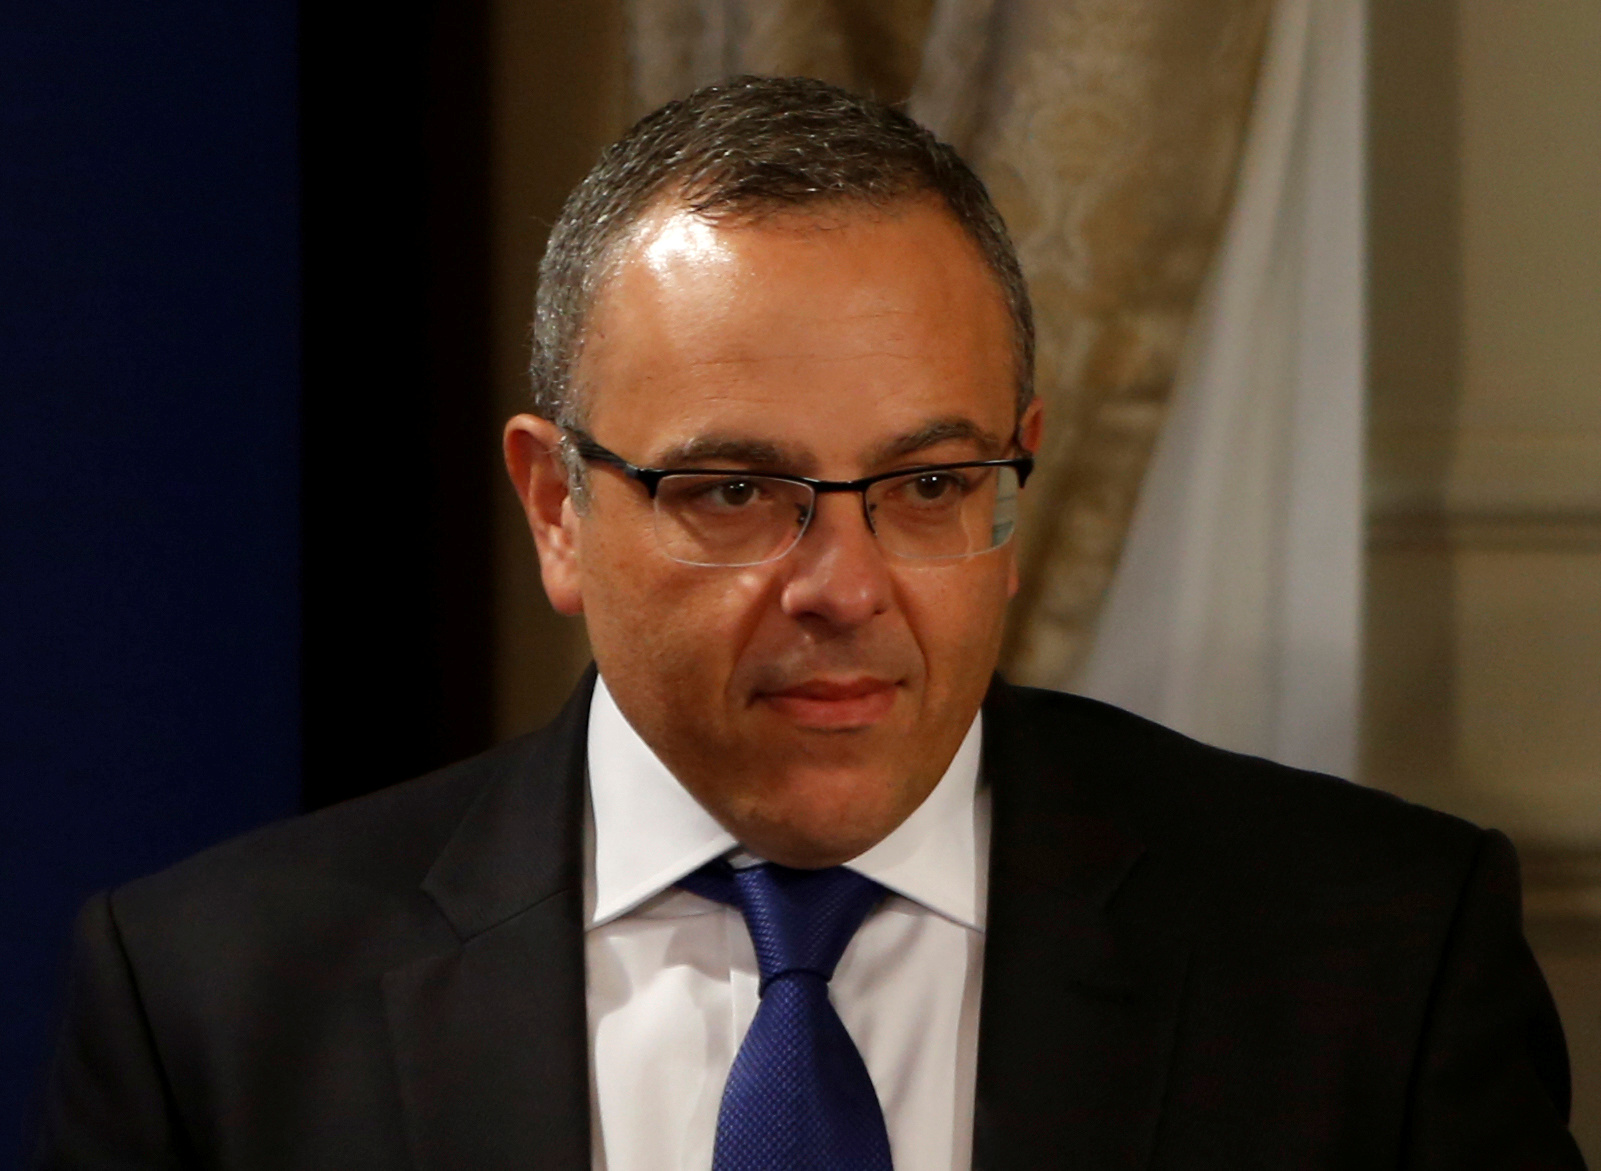 Keith Schembri, Chief of Staff in the office of Malta's Prime Minister Joseph Muscat, arrives for a joint news conference between Muscat and President of the European Council Donald Tusk in Valletta, Malta, March 31, 2017. REUTERS/Darrin Zammit Lupi/File Photo